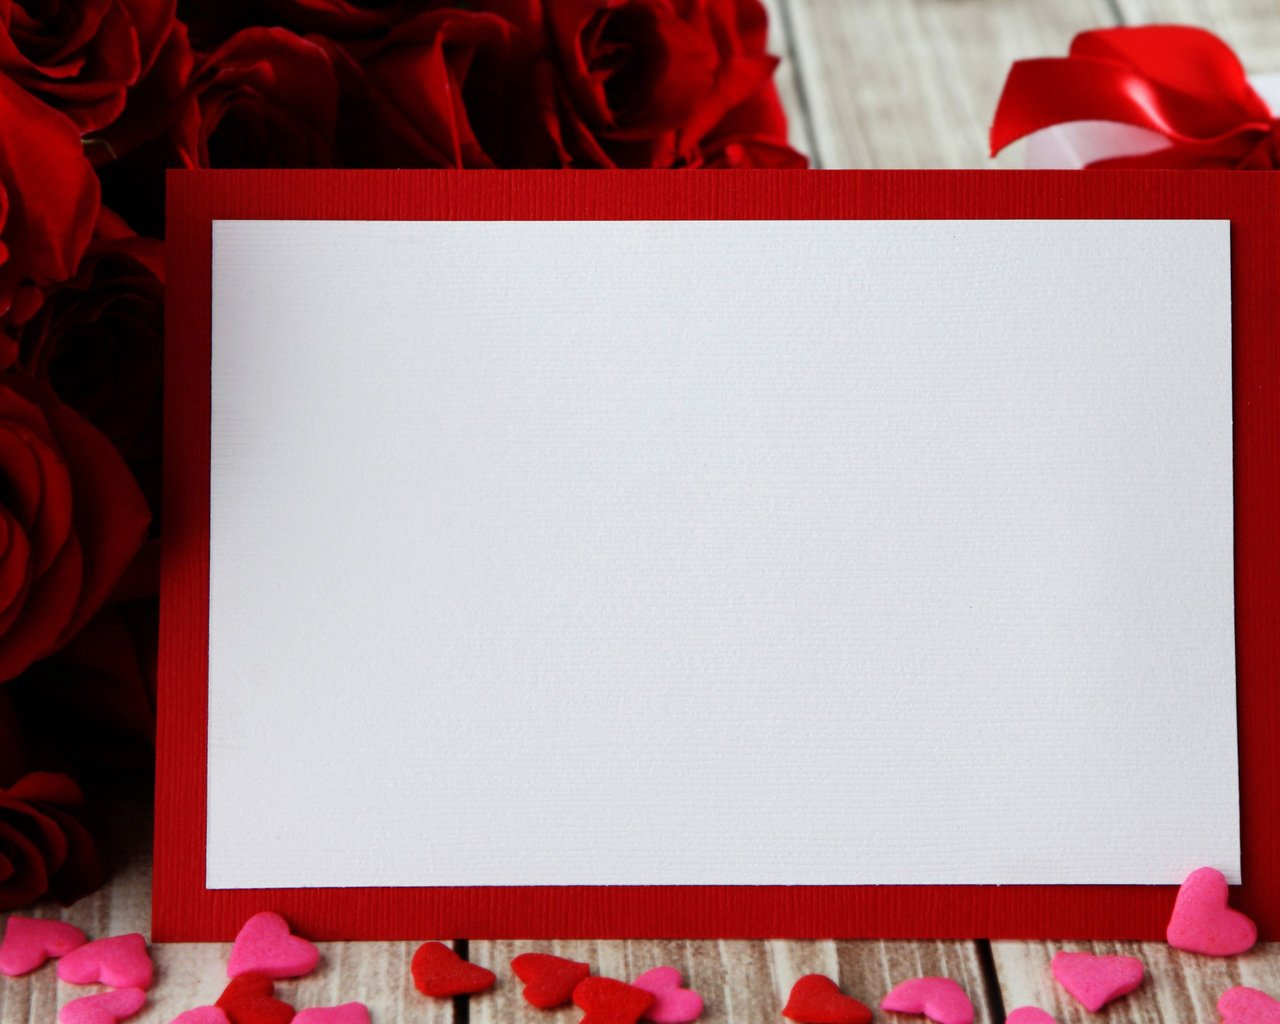 Picture Frame Love Wallpaper: Blank Picture Frame Wallpaper